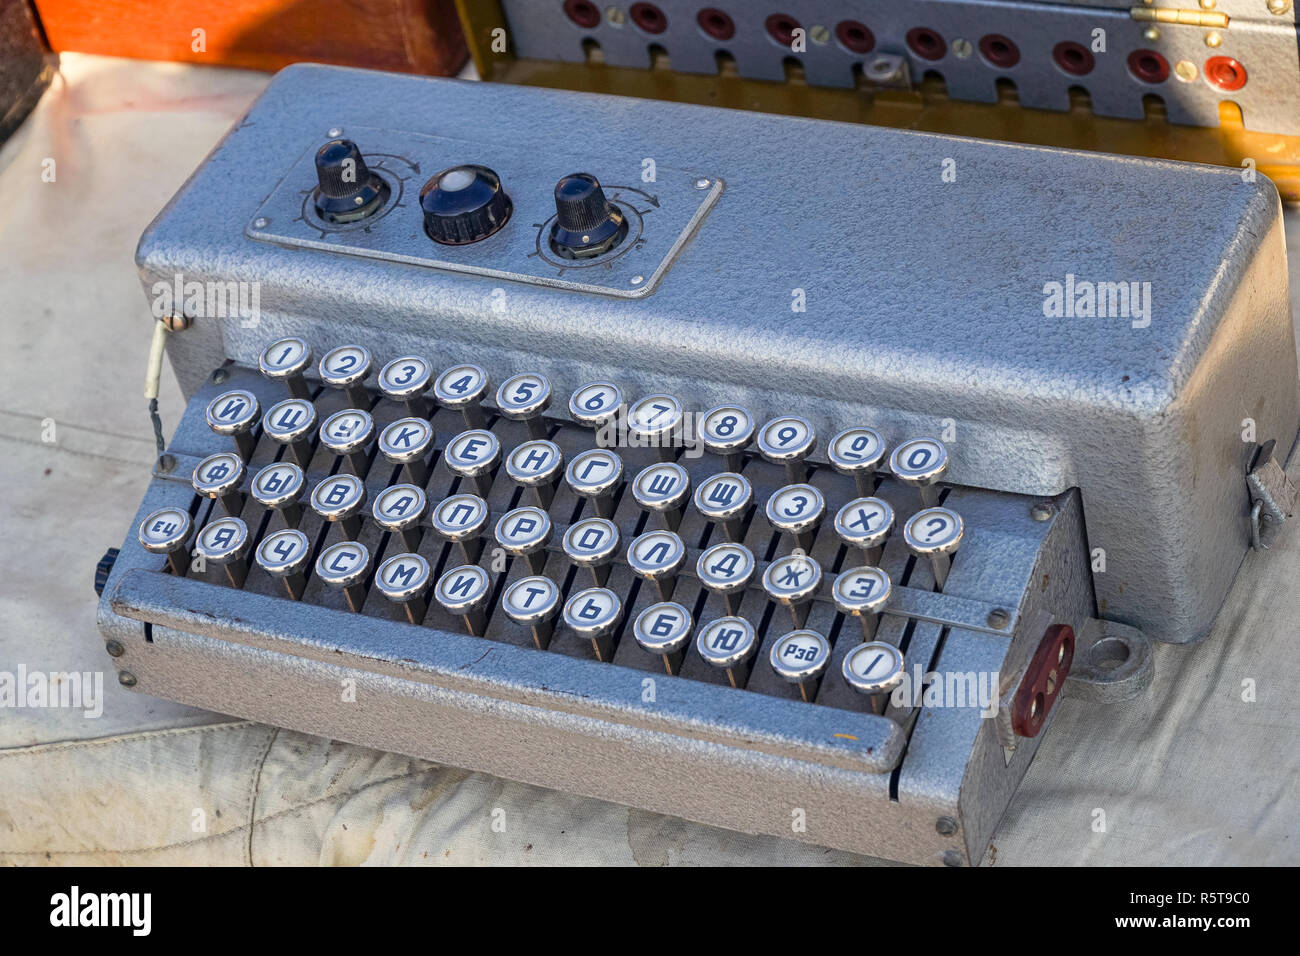 Electric retro keyboard for Telegraph or teletype - Stock Image